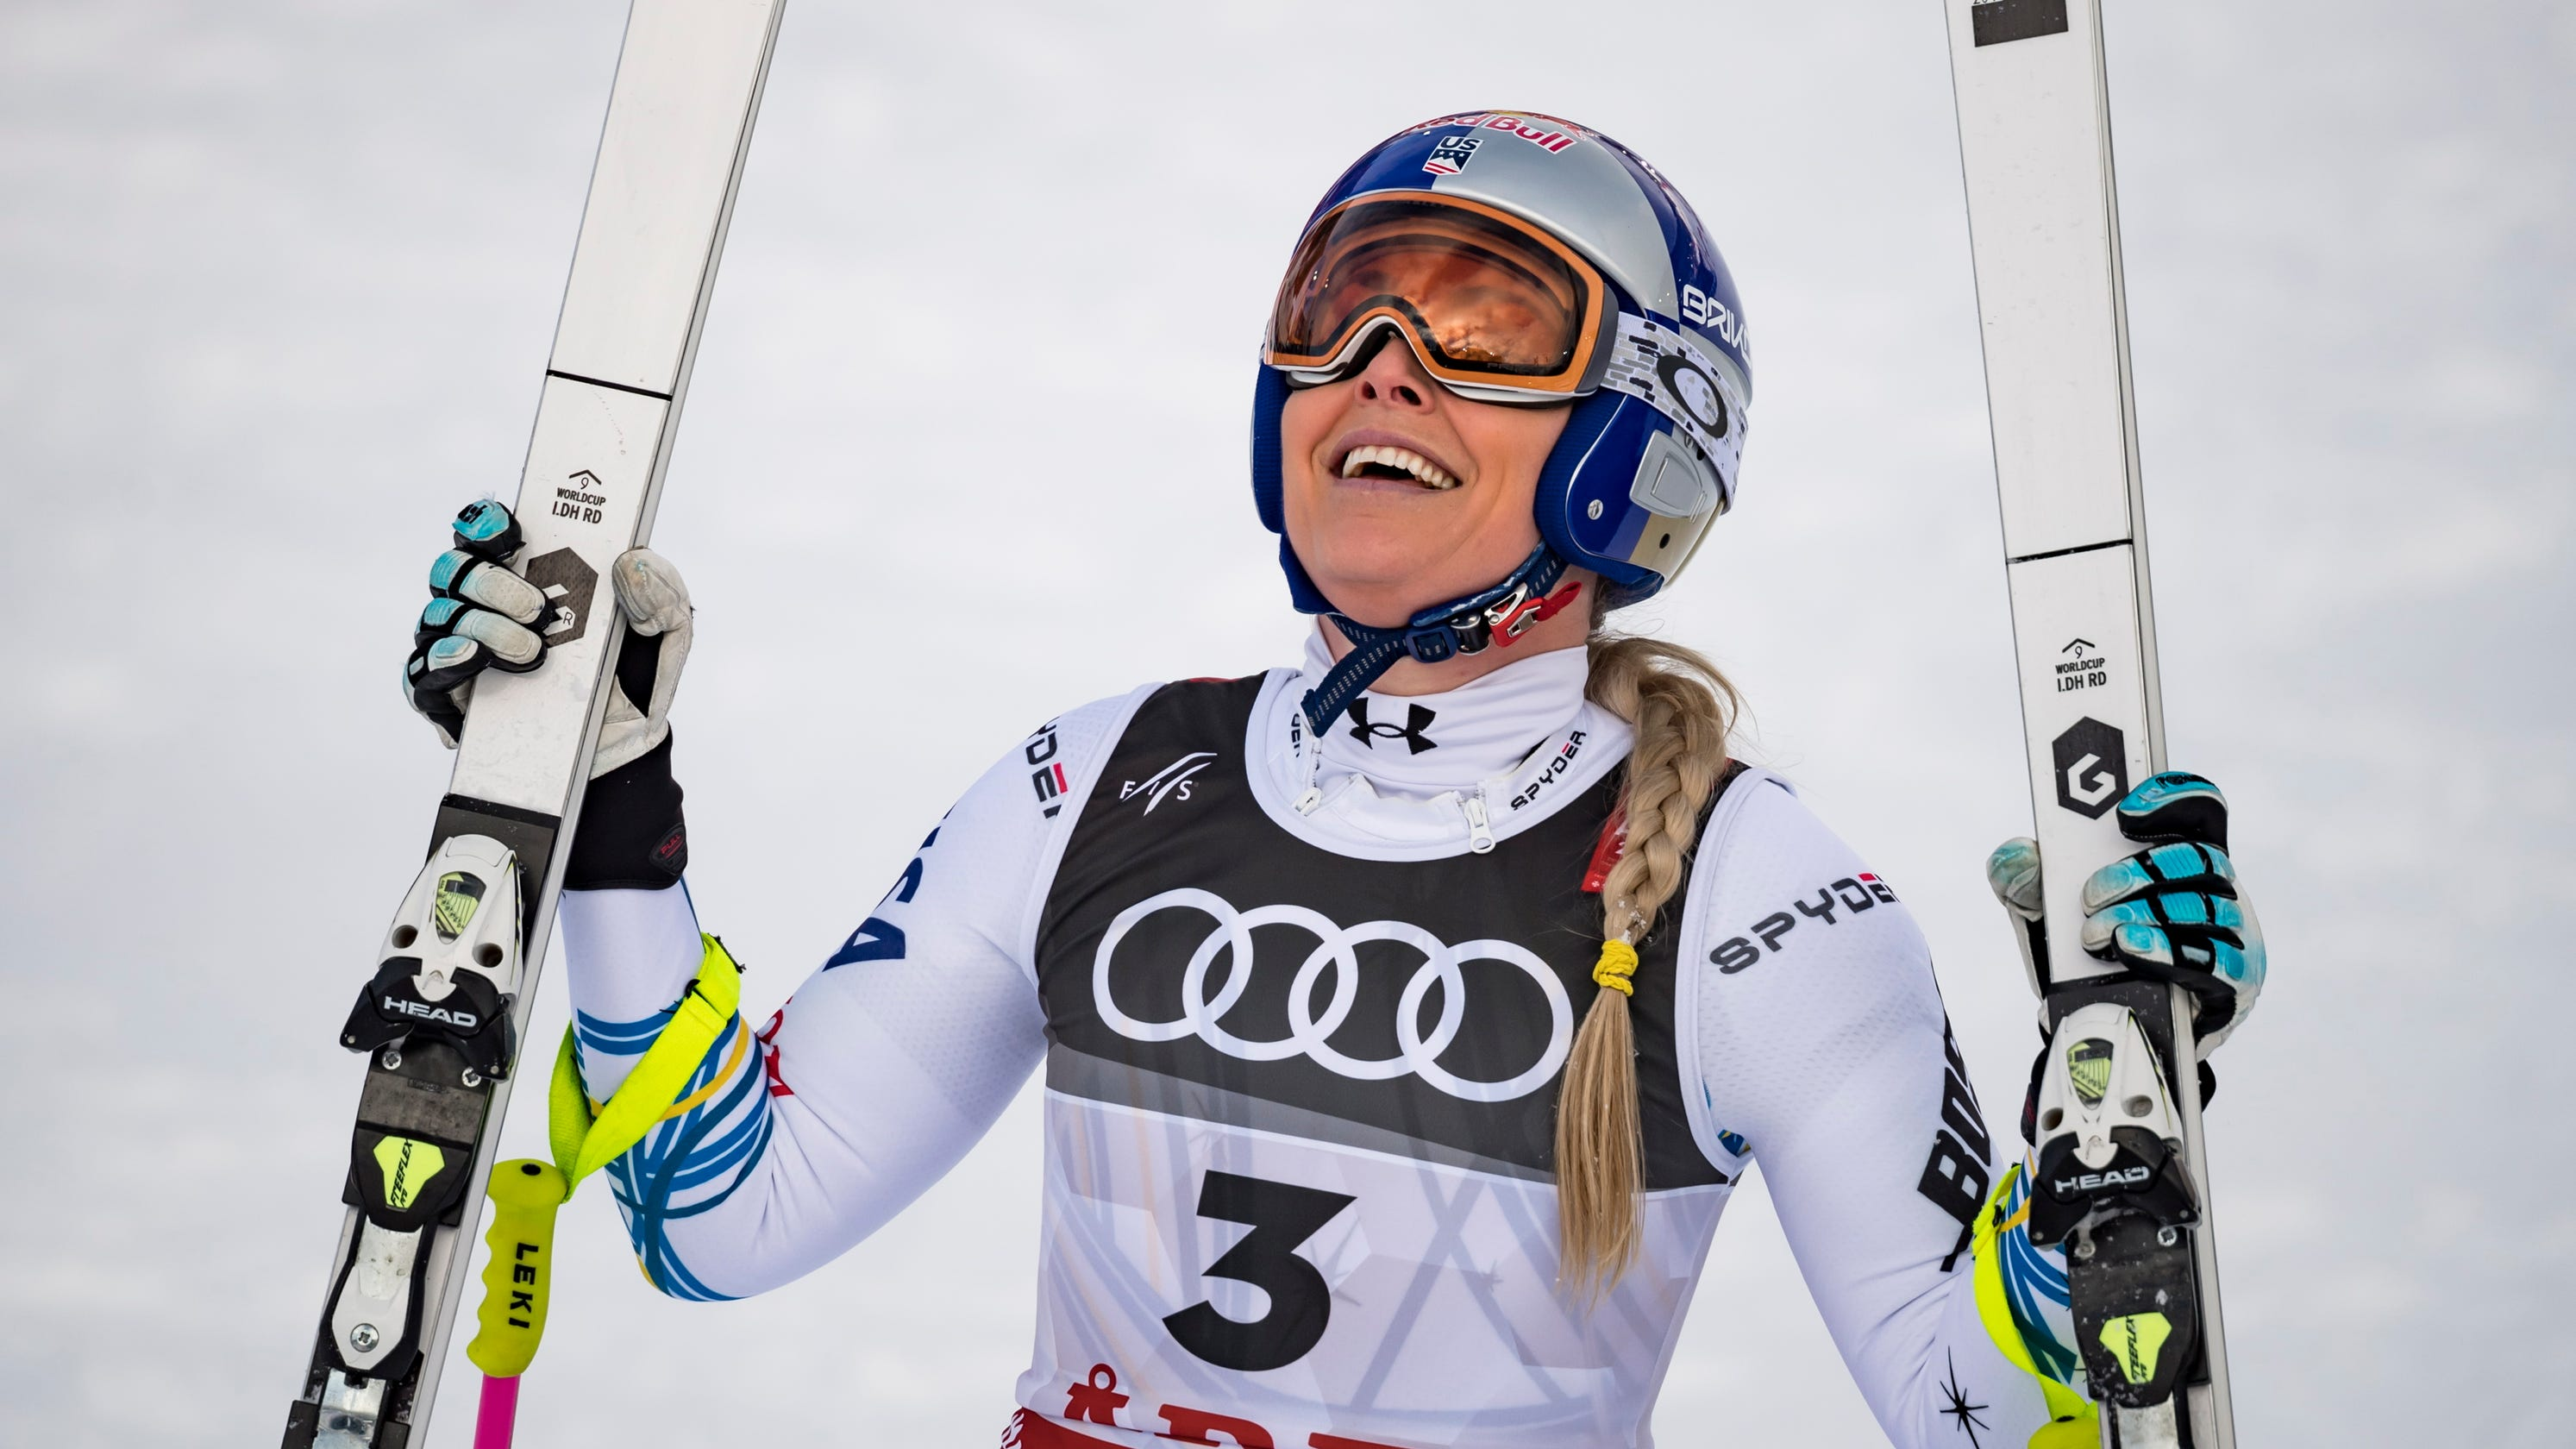 Opinion: Injuries be damned, Lindsey Vonn goes out on her terms - and on the podium